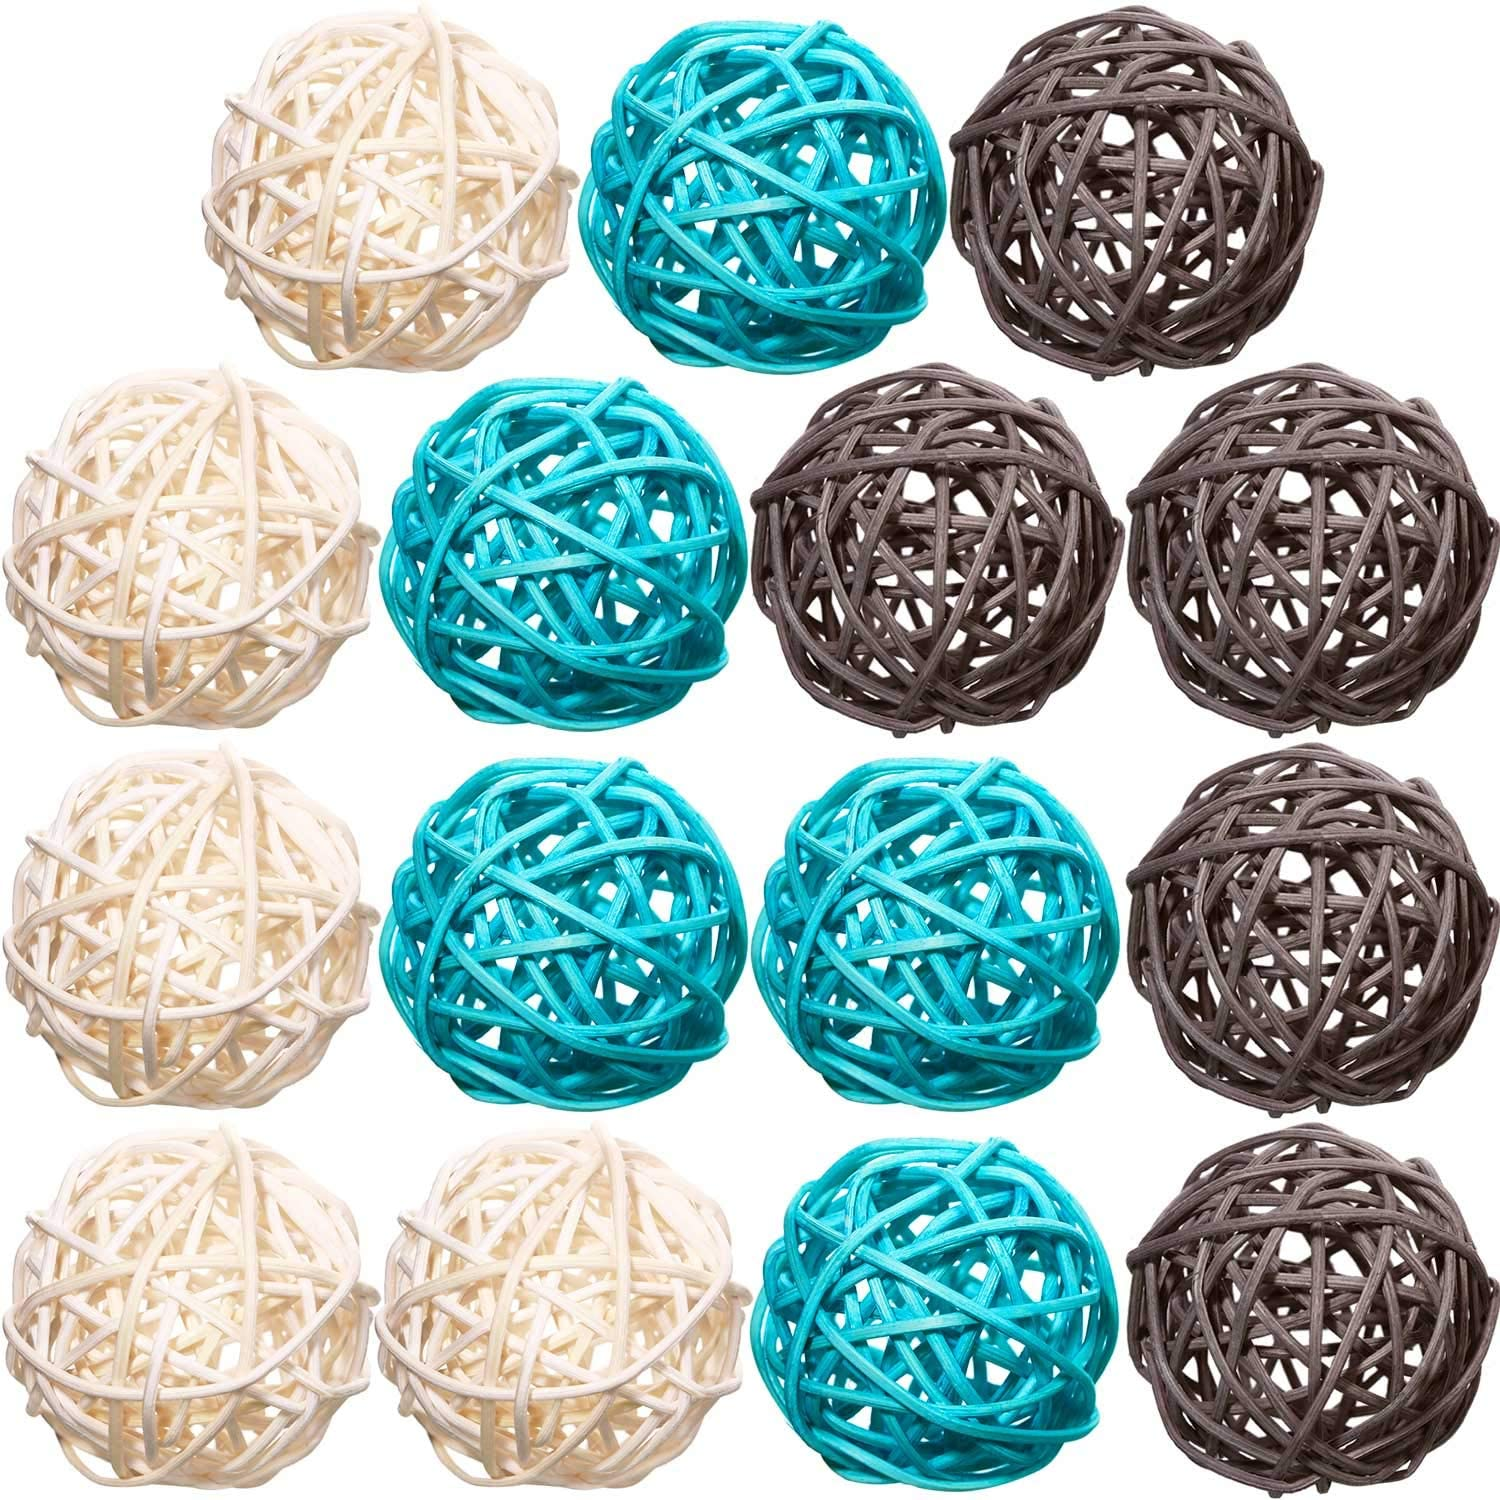 Yaomiao 15 Pieces Wicker Rattan Balls Decorative Orbs Vase Fillers for Craft, Party, Valentine's Day, Wedding Table Decoration, Baby Shower, Aromatherapy Accessories, 1.8 Inch(Light-Blue White Gray)